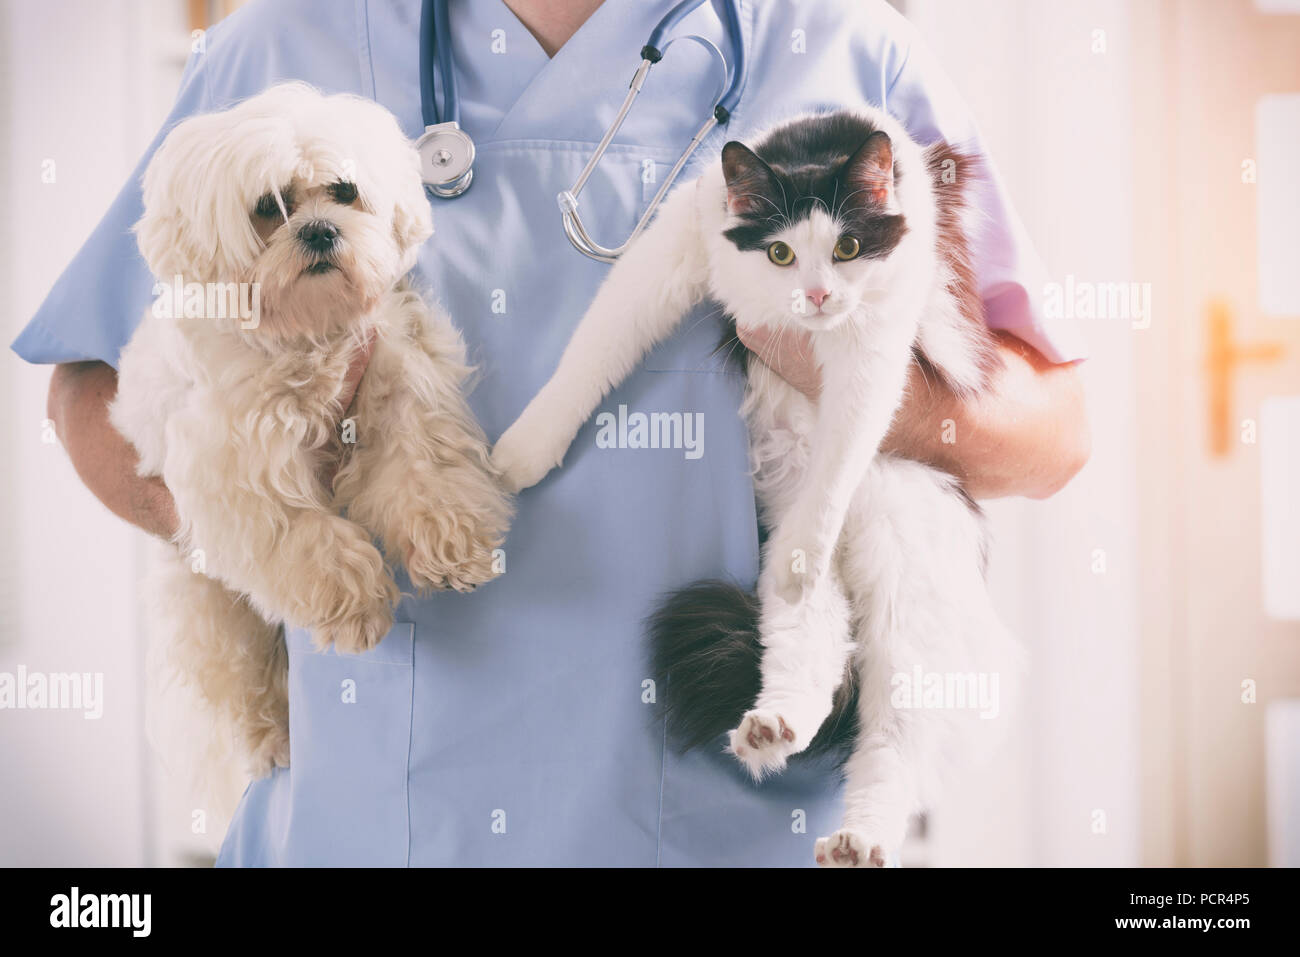 Vet with dog and cat in his hands - Stock Image